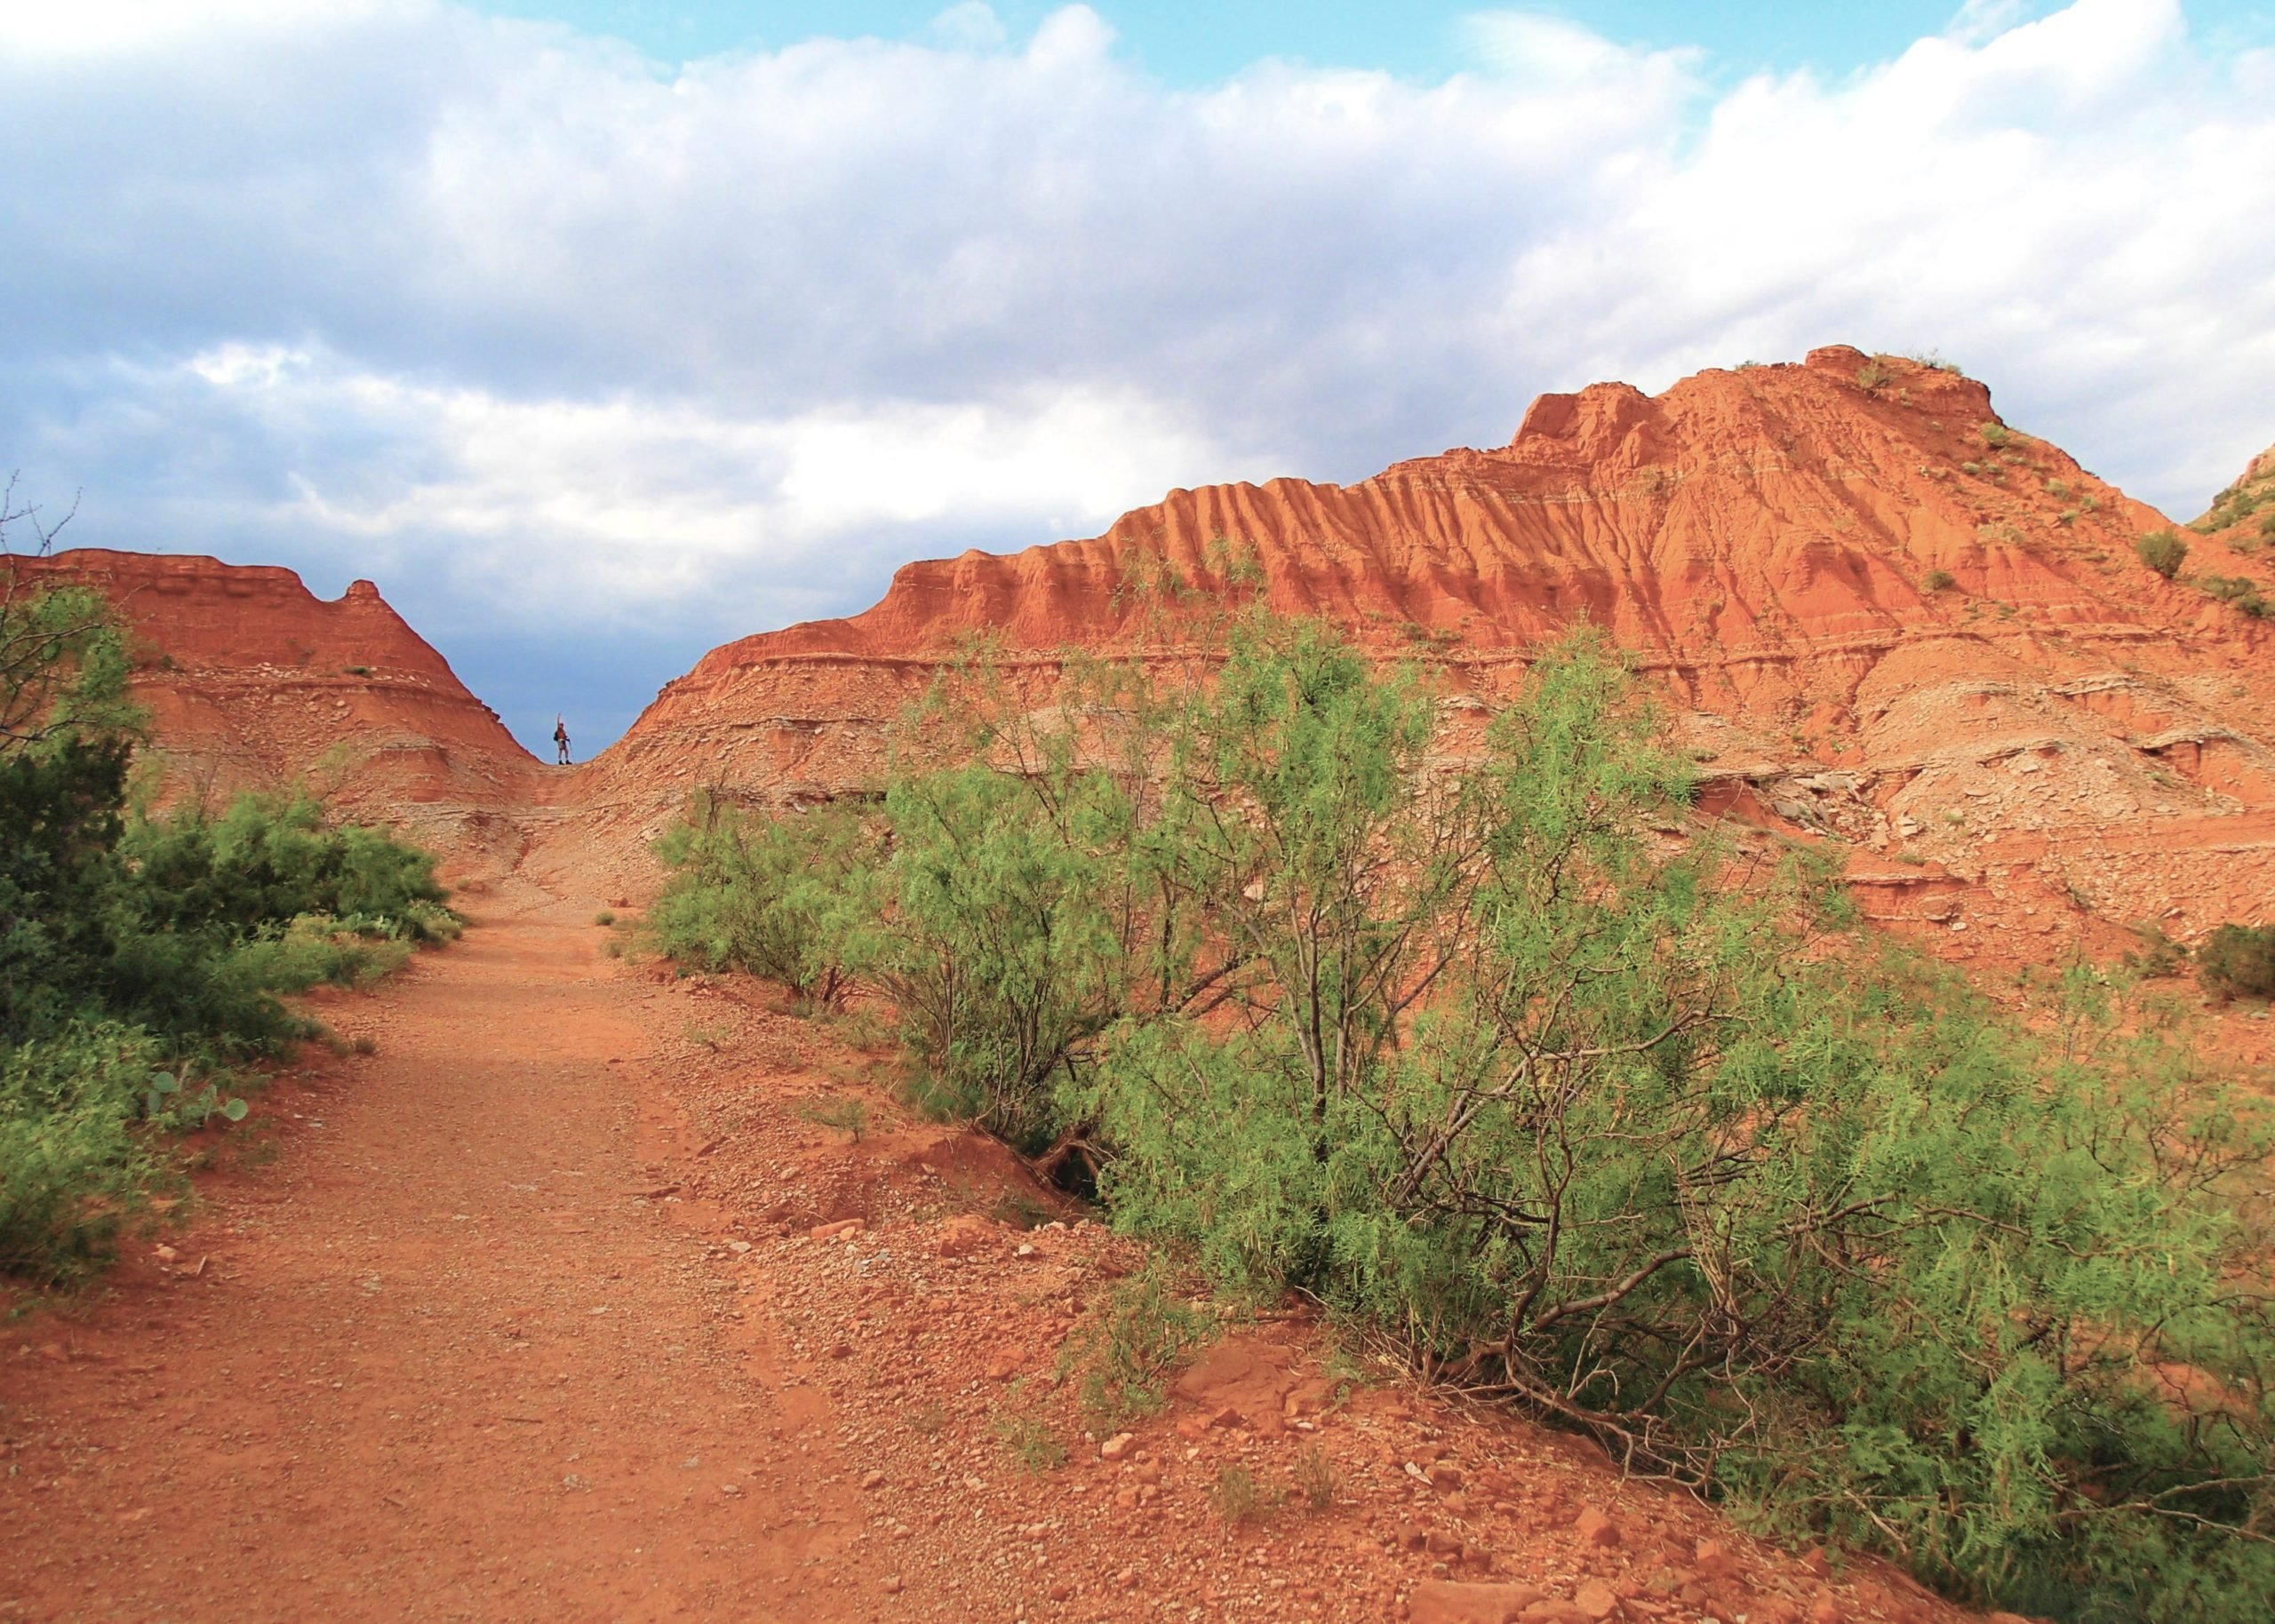 Texas: Caprock Canyons State Park